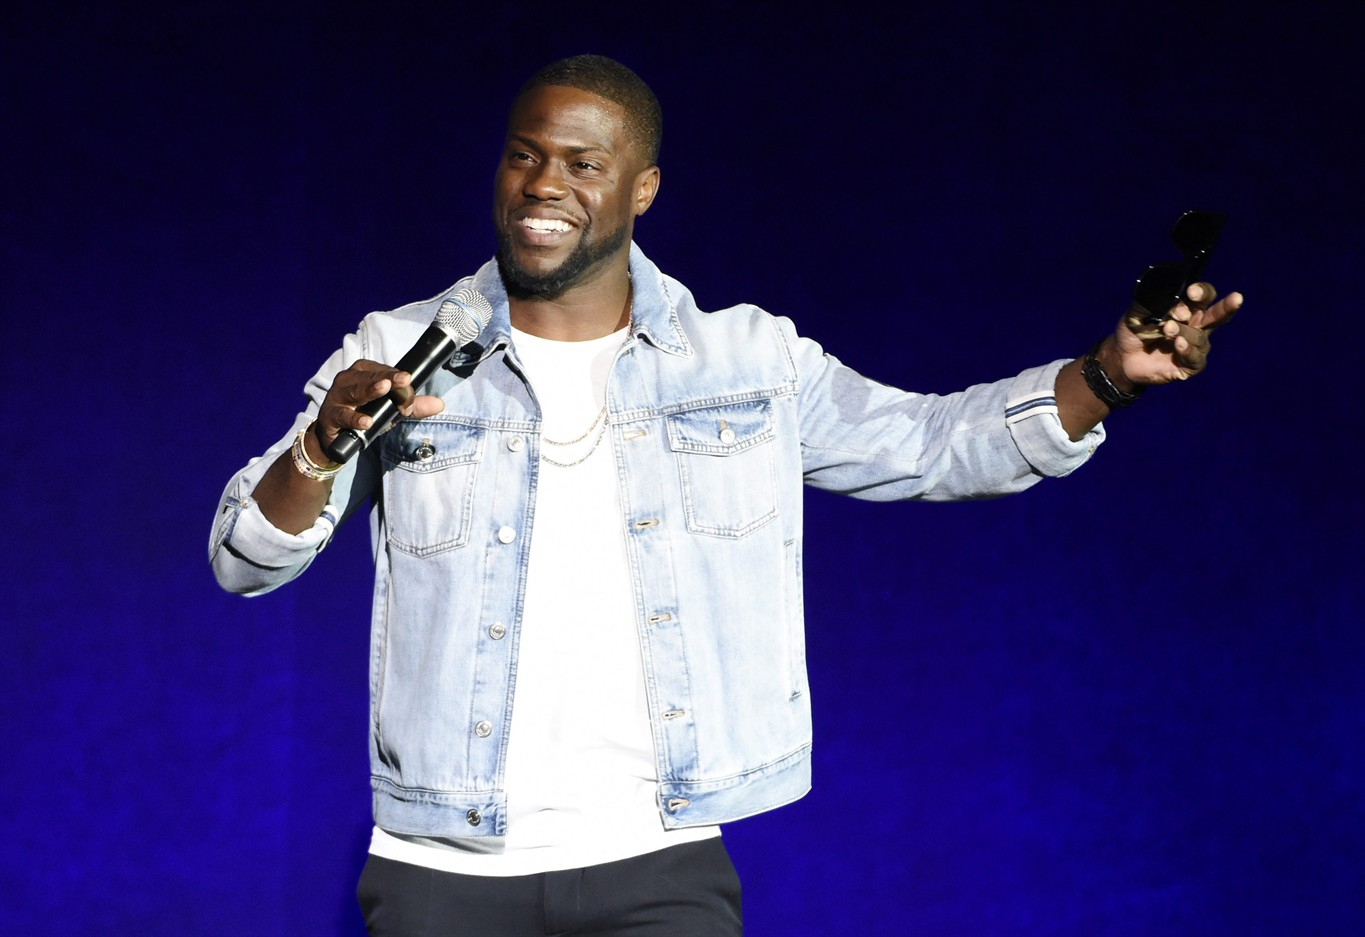 Kevin Hart's Rap Alter Ego, Chocolate Droppa, Signs Deal